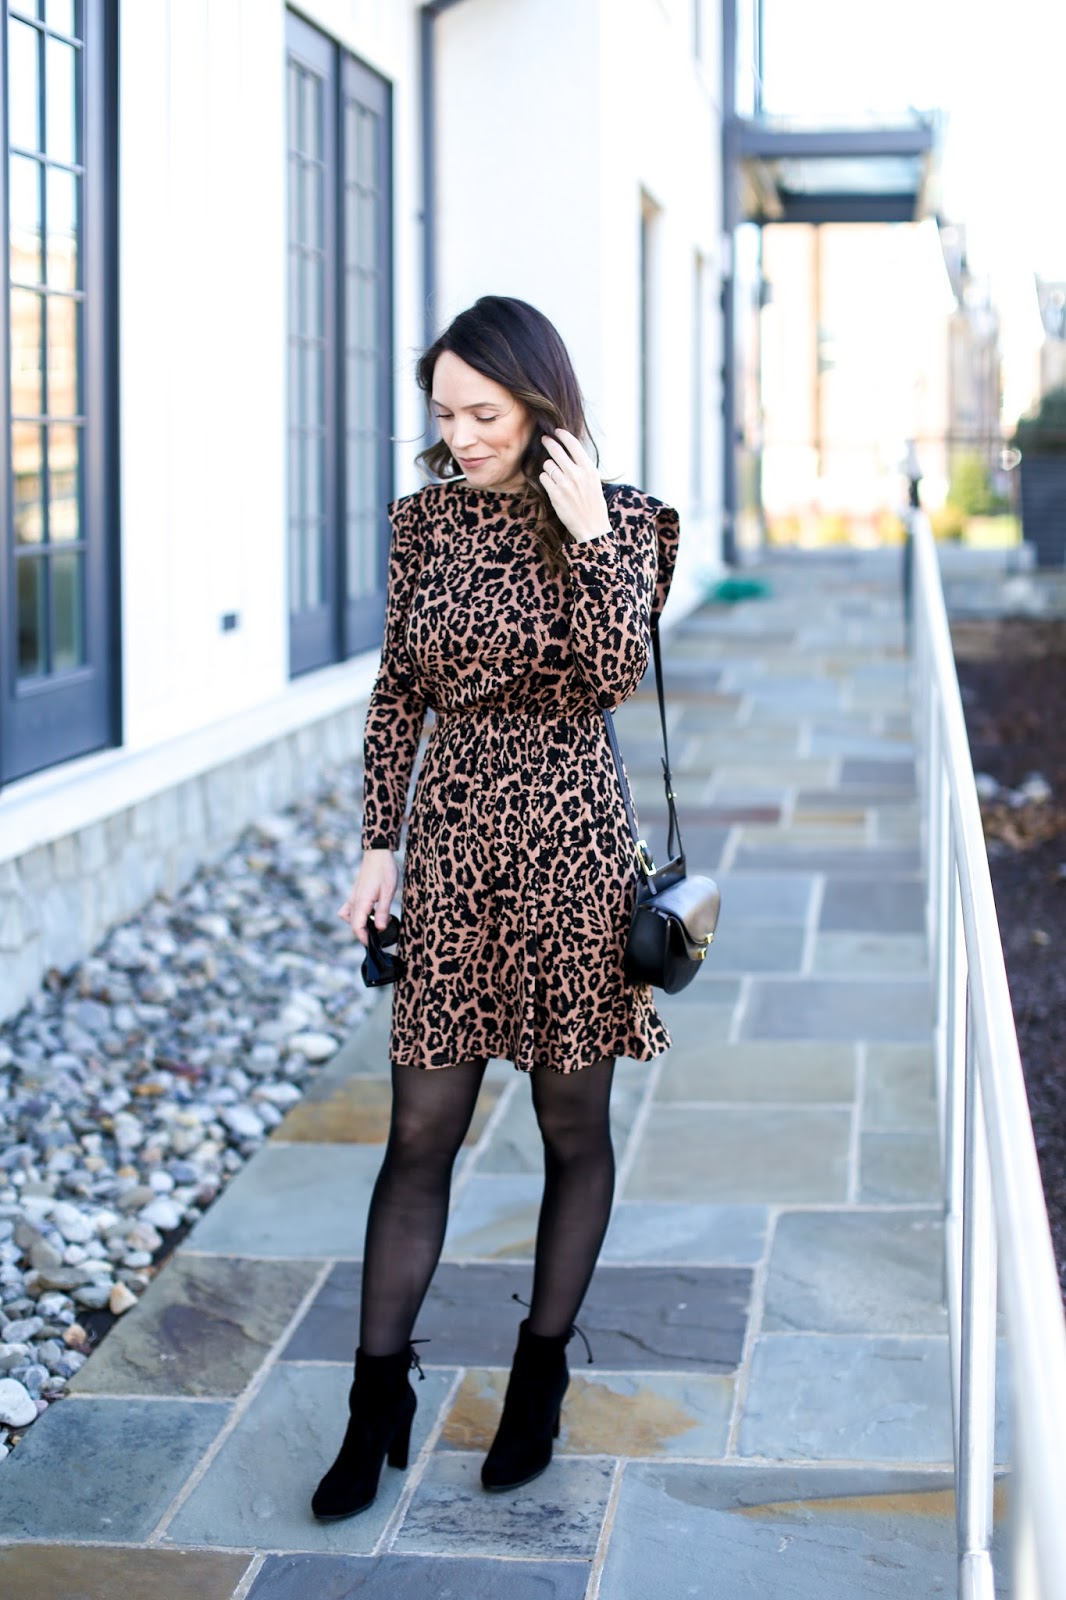 Leopard Print For the Holidays